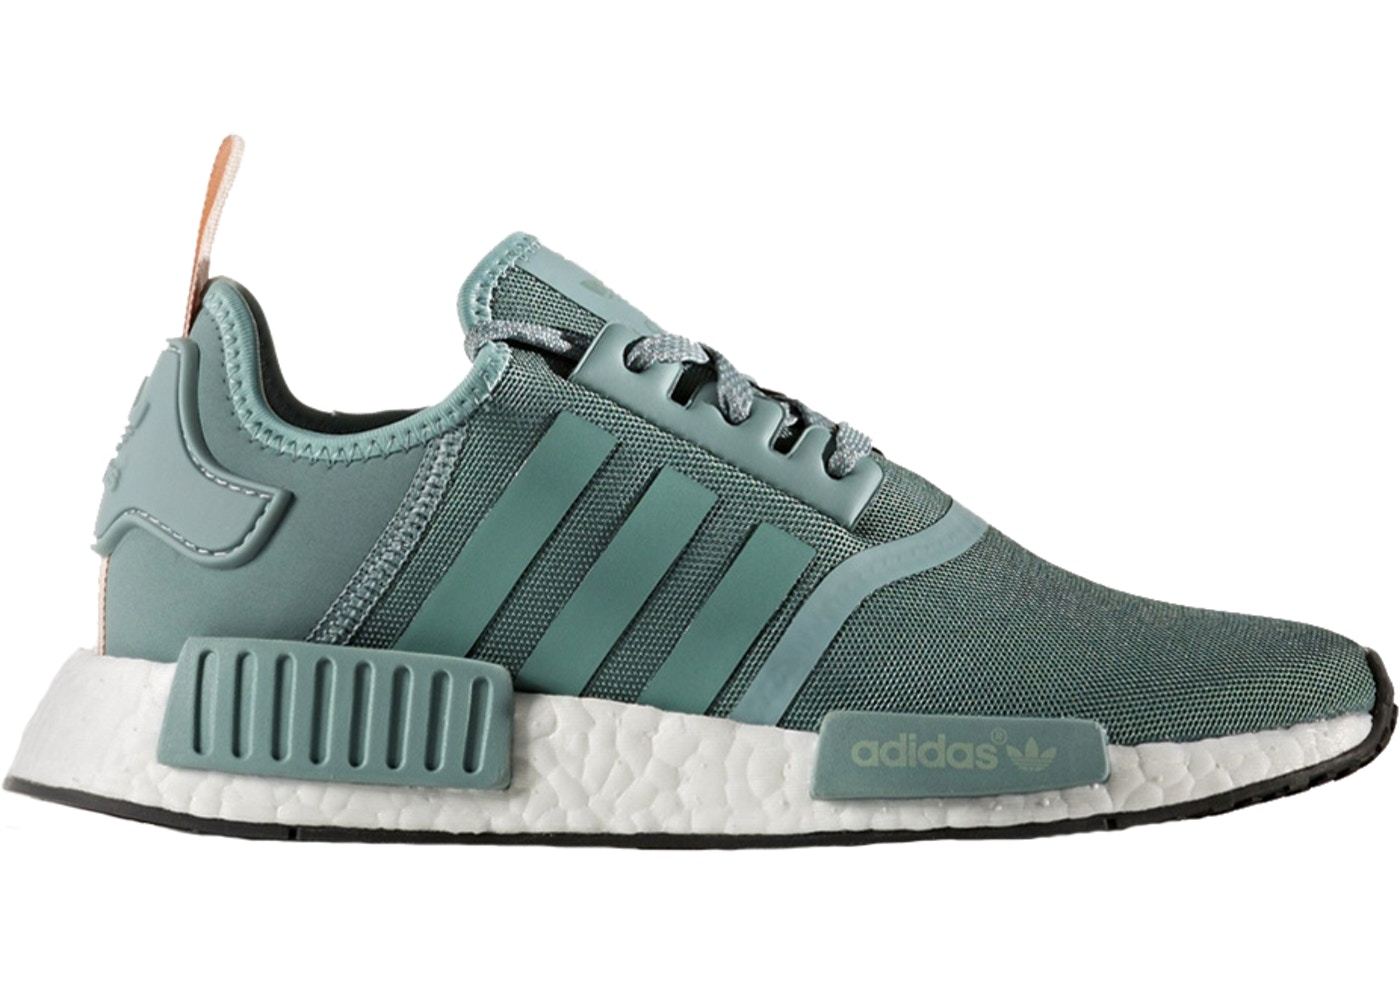 dfb9c29a0f73e adidas NMD R1 Vapour Steel (W) - S76010